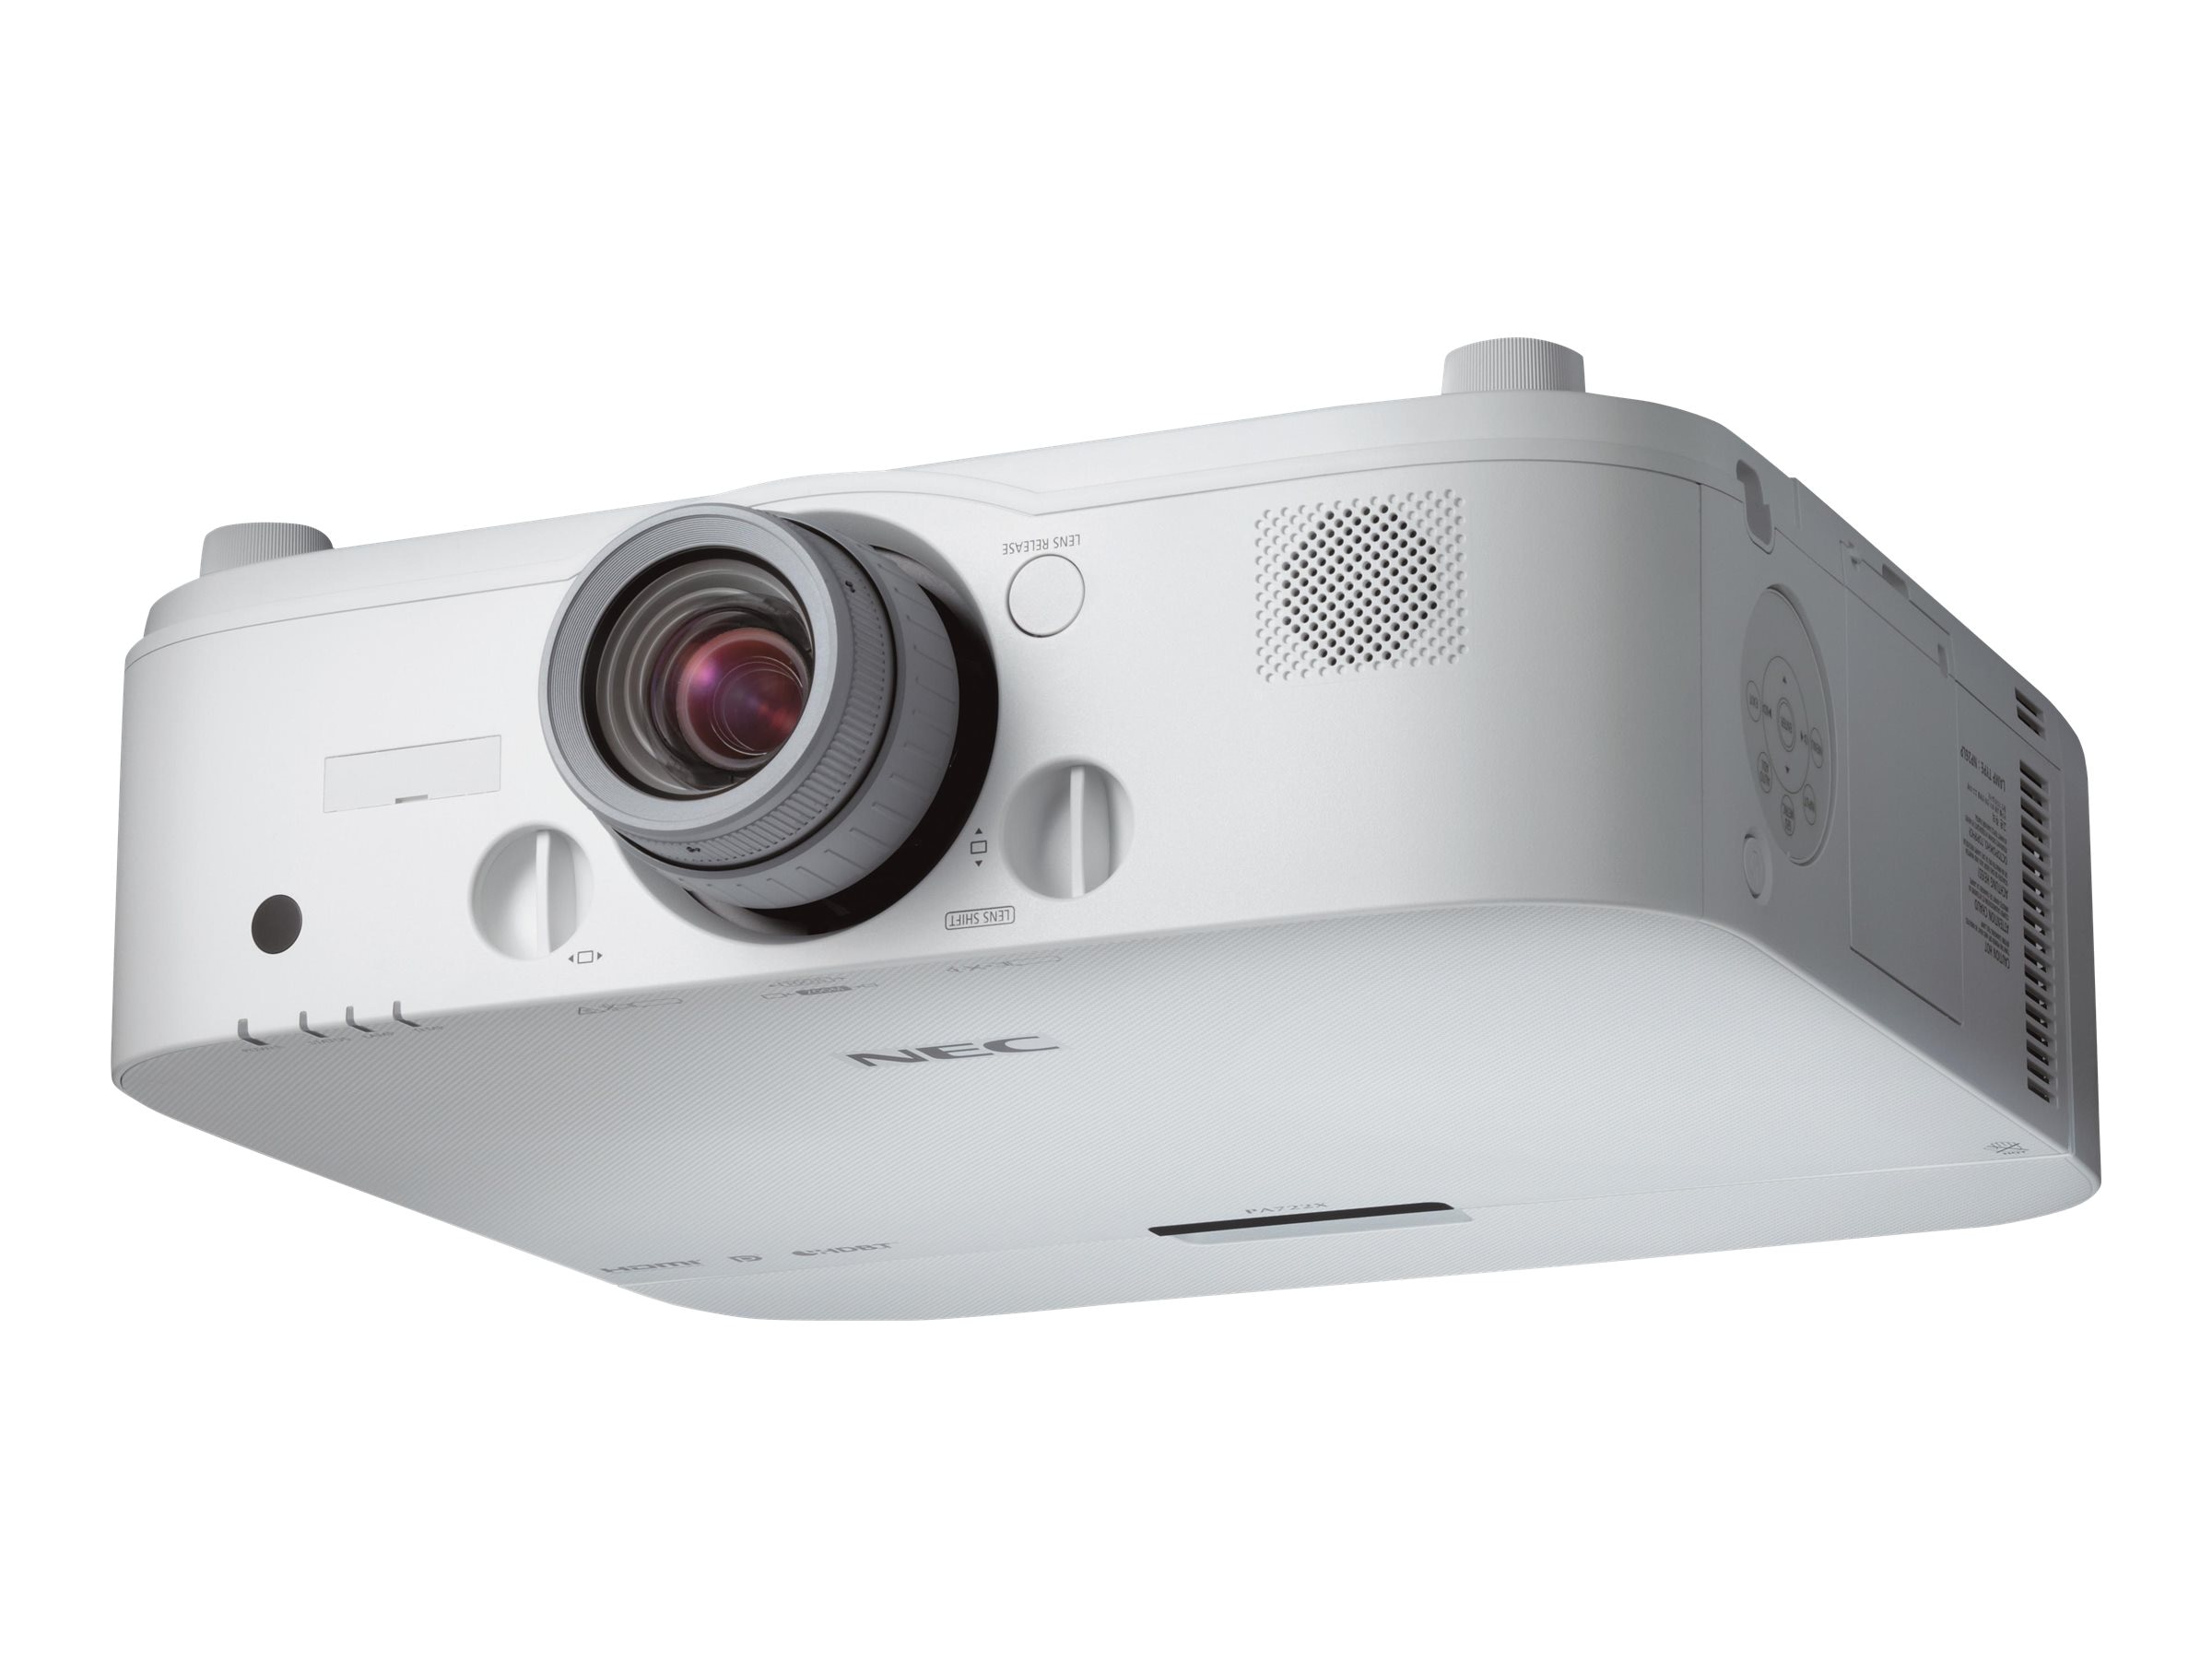 NEC PA722X XGA LCD Projector, 7200 Lumens, White with 1.5-3.0:1 Zoom Lens, NP-PA722X-13ZL, 17964068, Projectors